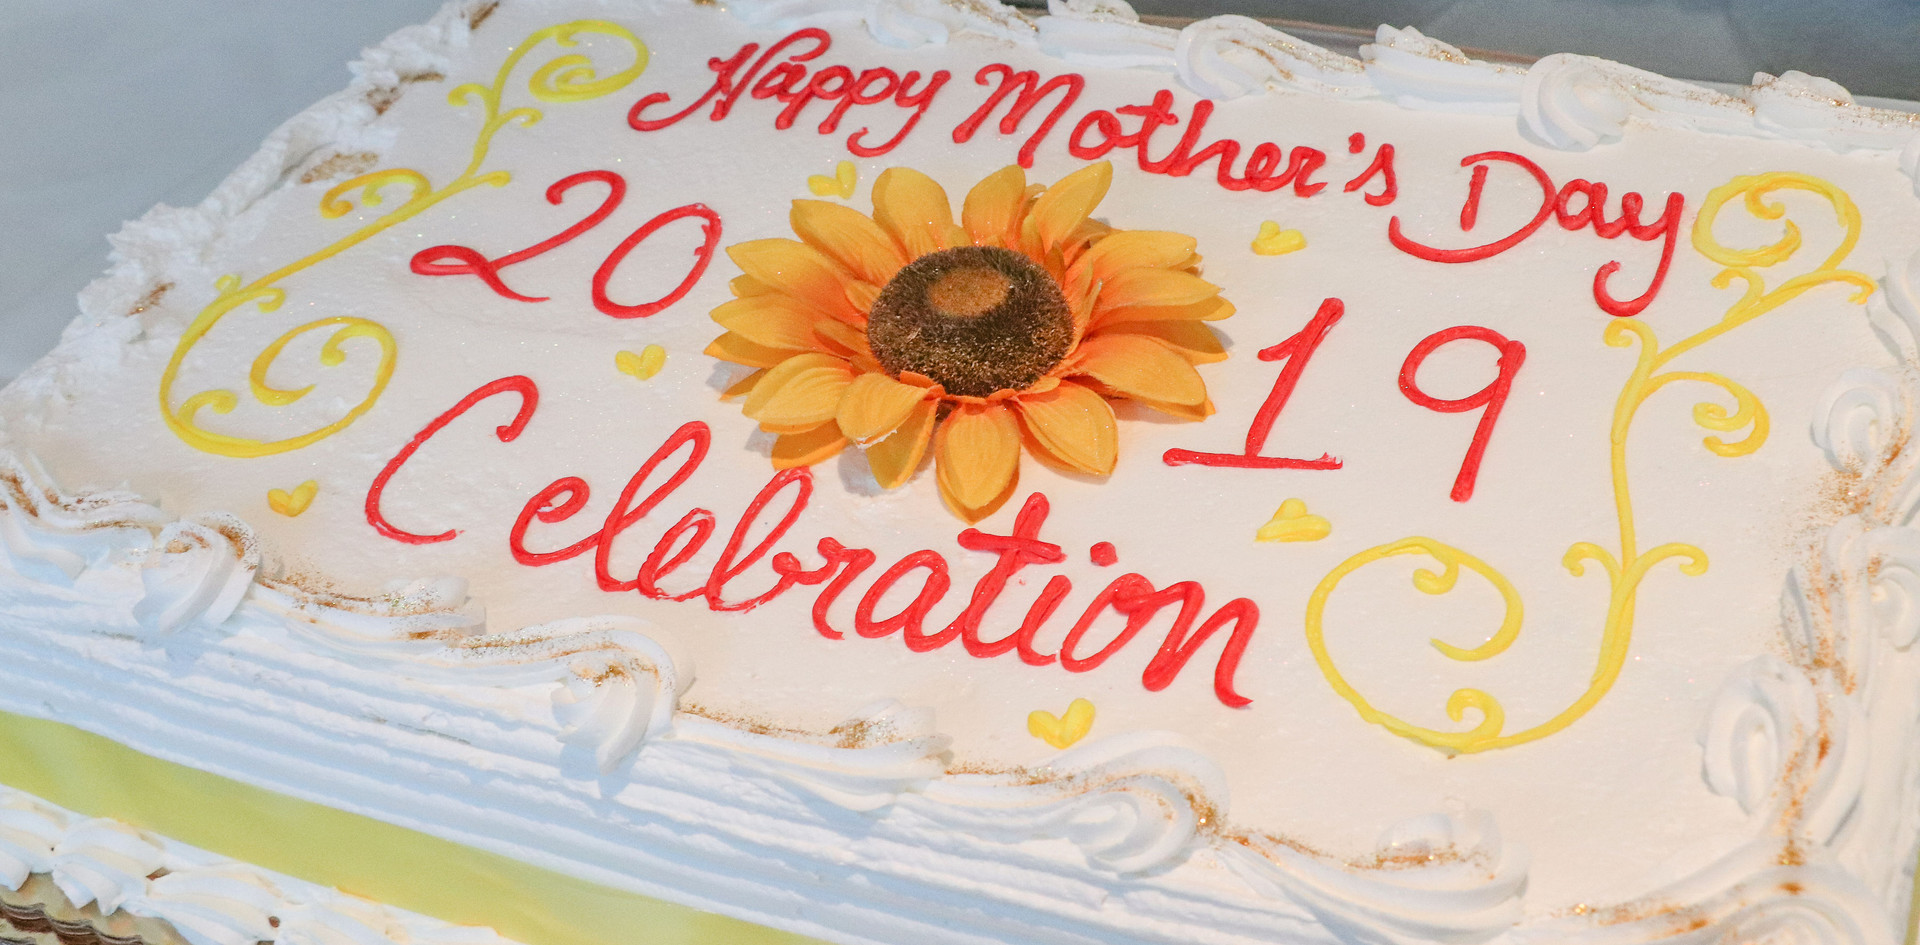 1st Annual Mother's Day Celebration